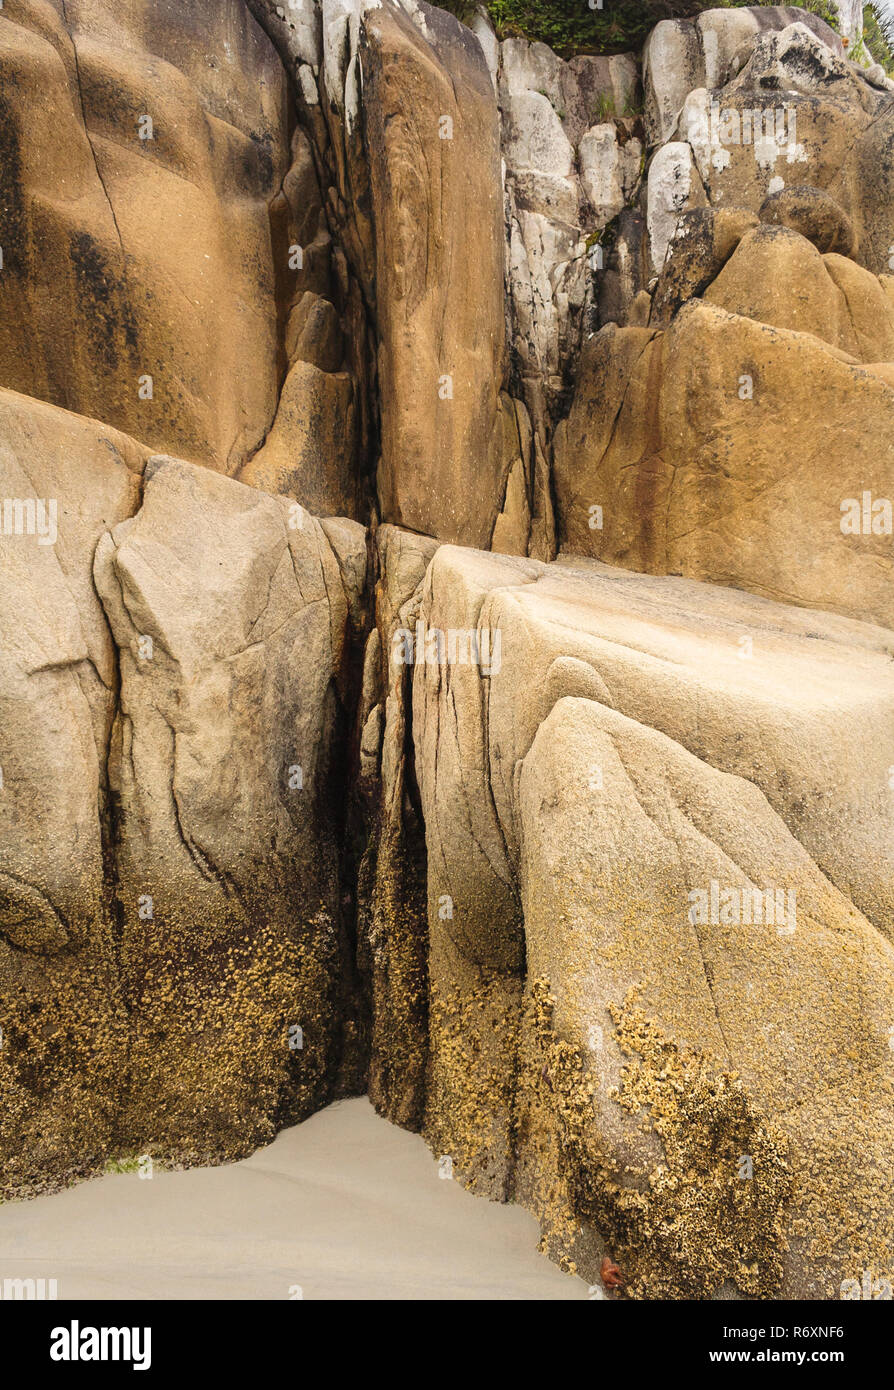 Abstract closeup of an eroded granite bluff at the edge of a sandy  beach, with contrasting hard, soft, smooth and rough textures (British Columbia). - Stock Image